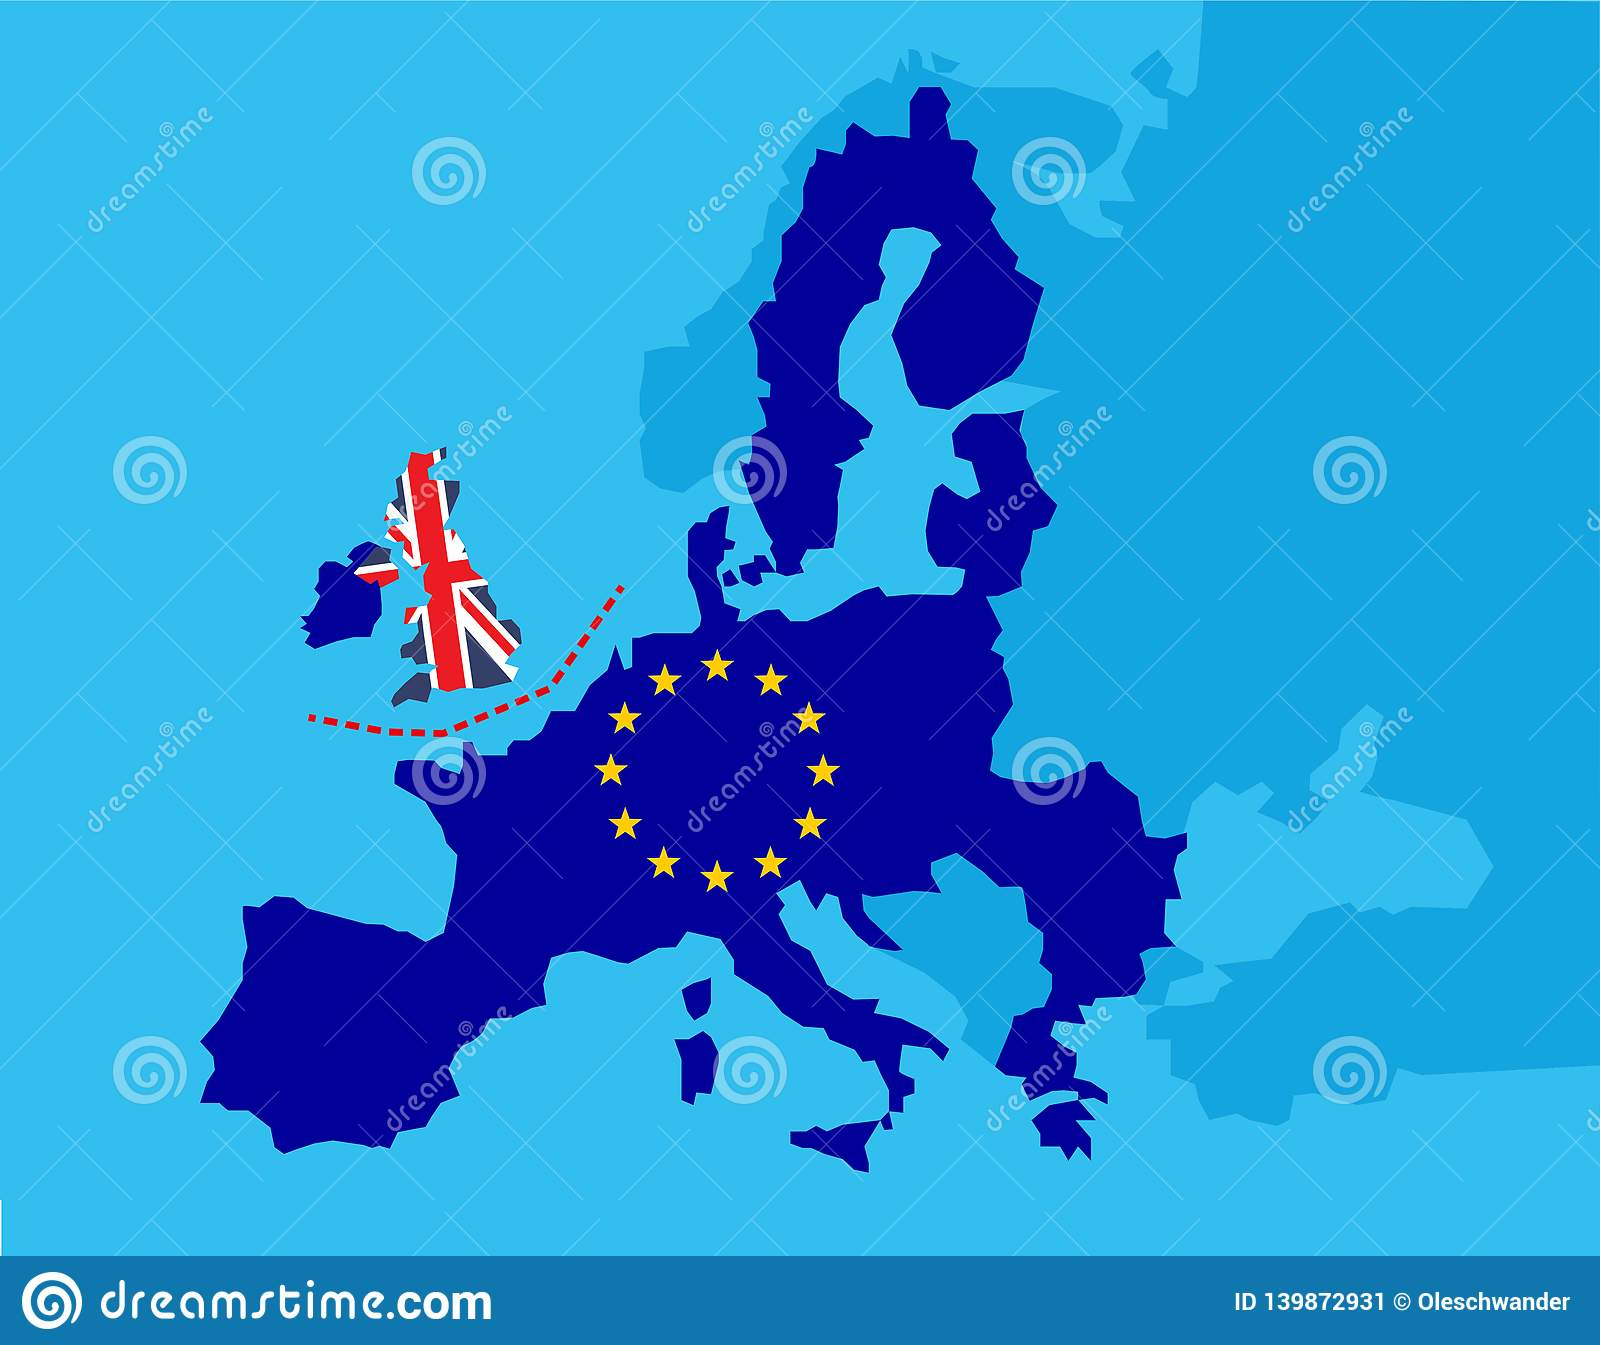 Map Of Europe England.Brexit Referendum Uk Concept United Kingdom Great Britain Or